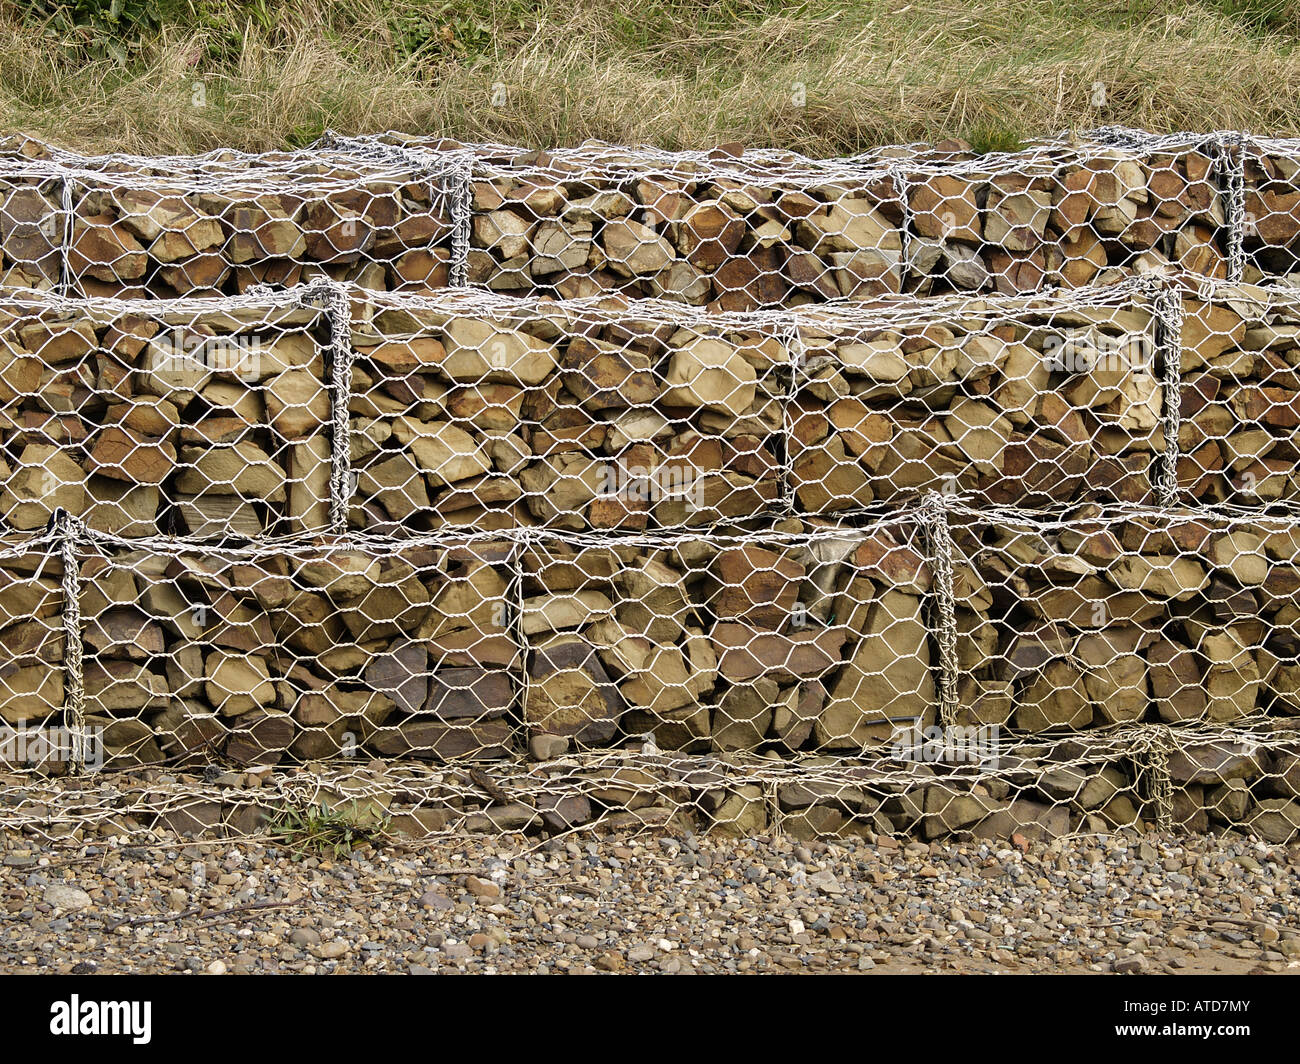 gabion used for erosion control on summerleaze beach made of caged stock photo royalty free. Black Bedroom Furniture Sets. Home Design Ideas